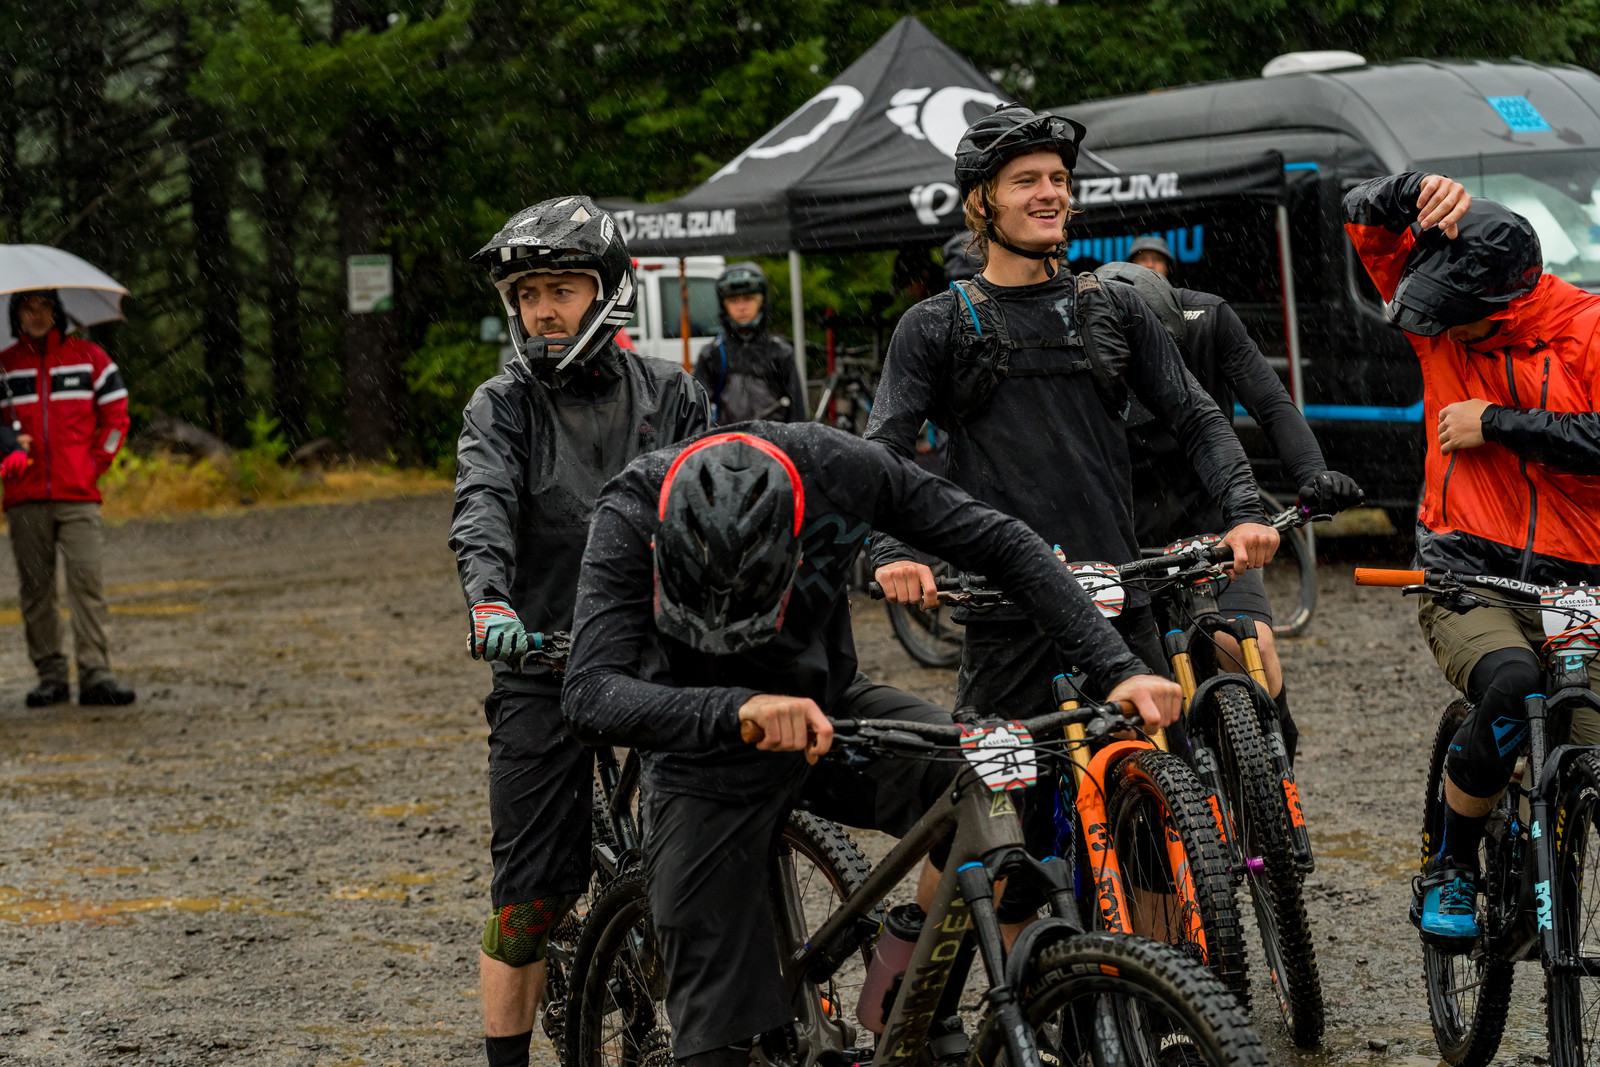 Some riders are little more excited about rolling out in the rain than the others.